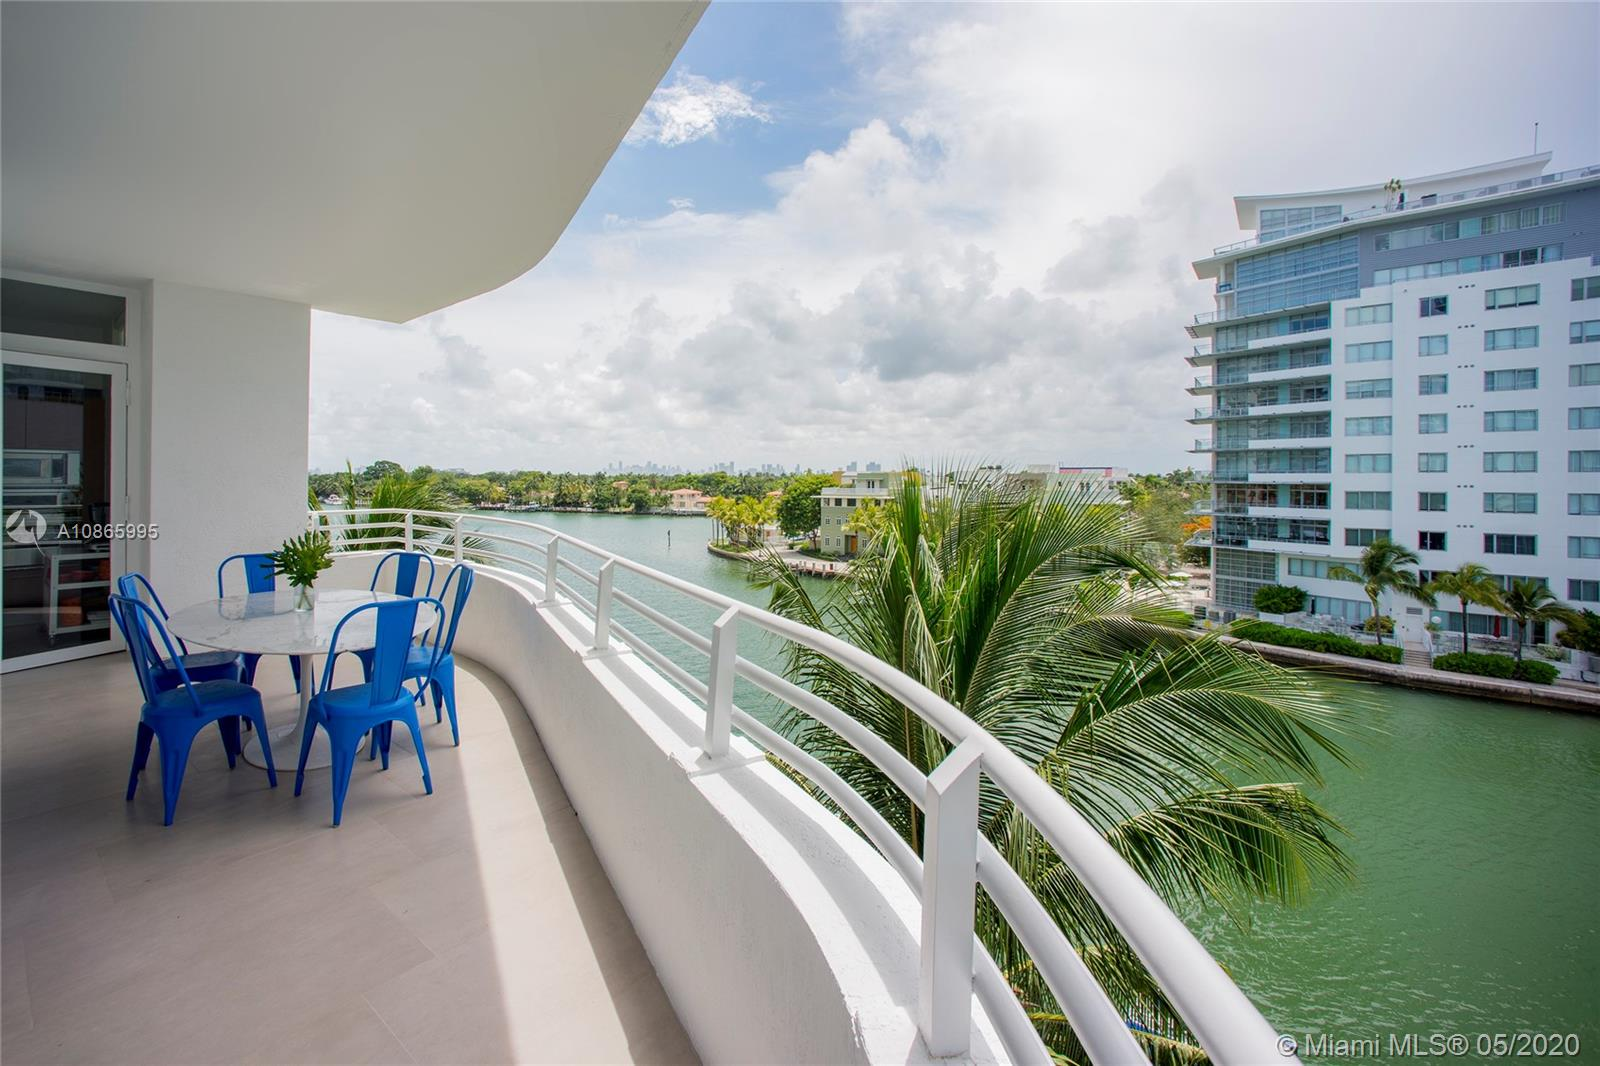 Laid-back luxury in prime waterfront location! Enjoy relaxed living and panoramic views in a large, peaceful, 3 bed / 3 bath furnished condo at Nautica, a boutique full-service building w/ doorman, 24 hr security, rooftop pool, spa, gym, and marina. Turnkey unit boasts the best floor plan in the building, with two balconies, each overlooking beautiful Indian Creek, home to some of Miami Beach's most iconic residences. The generous wraparound terrace provides the perfect setting for entertaining or dining alfresco. Fully renovated —new floors, kitchen, bathrooms — with washer & dryer and floor-to-ceiling impact windows throughout. Includes two parking spaces. Across the street from the beach. Minutes from supermarkets, restaurants, shopping, golf courses, rowing club, and Mt Sinai Hospital.